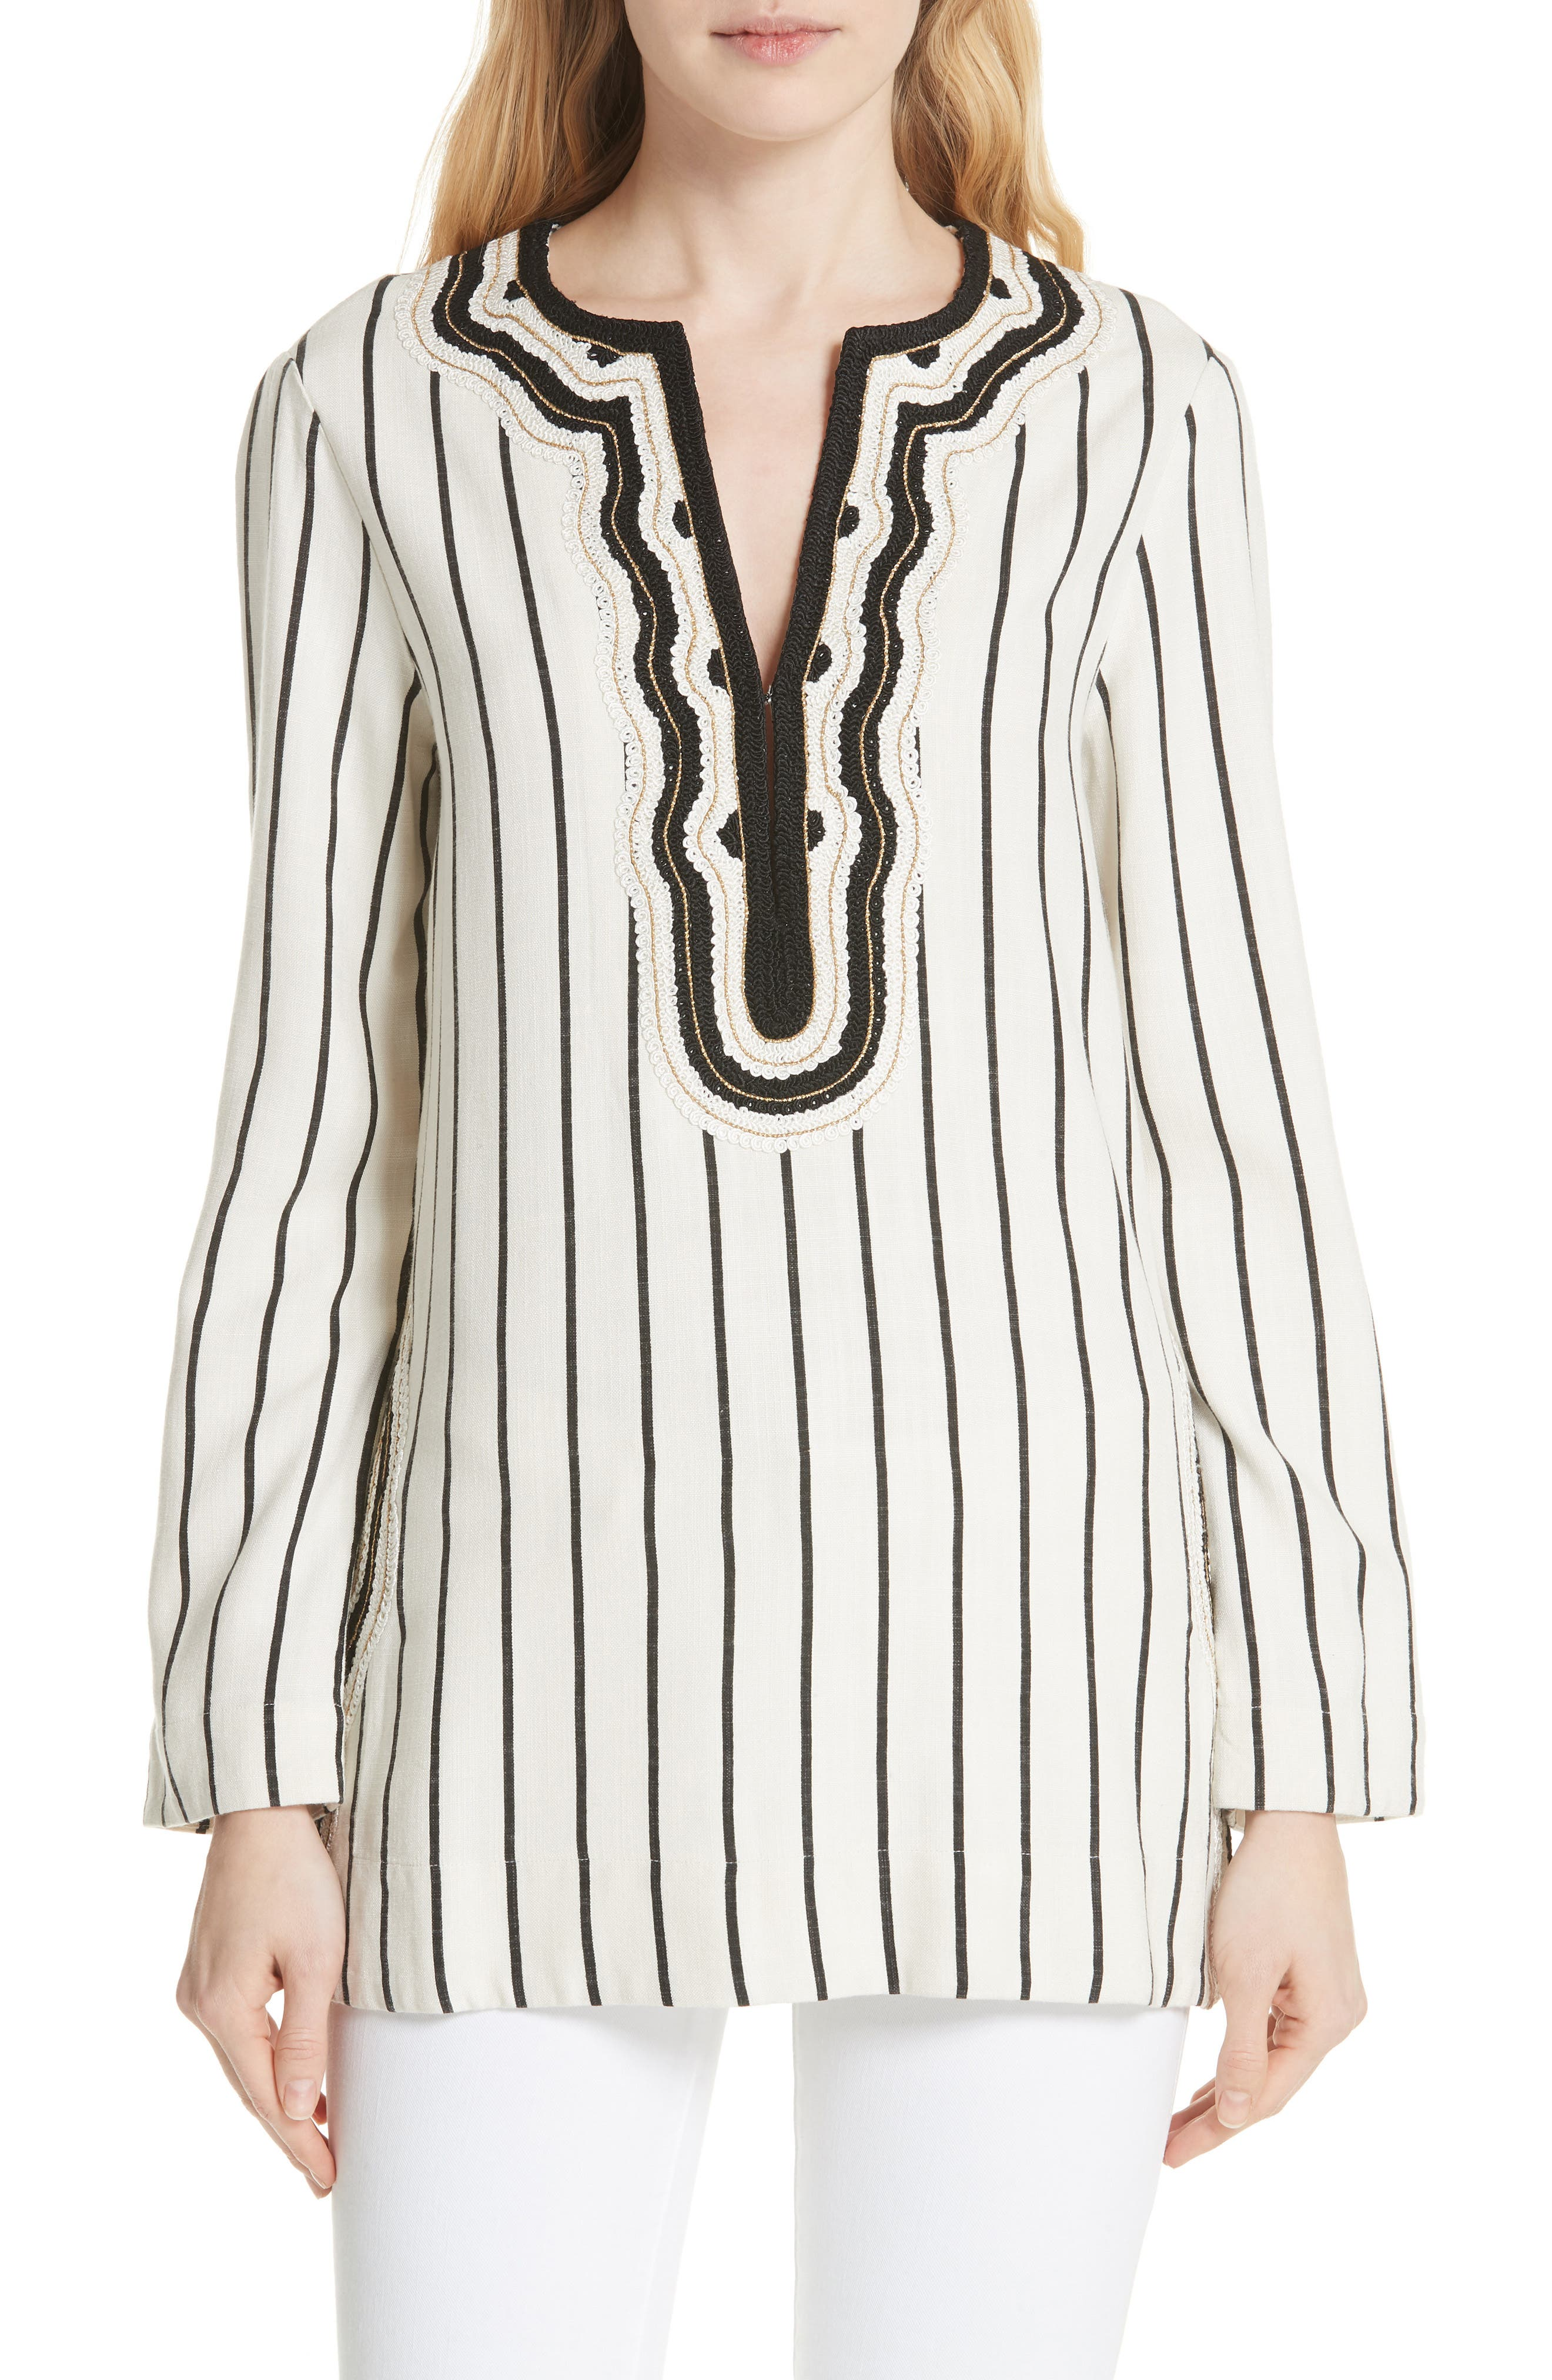 Tory Embellished Stripe Tunic,                             Main thumbnail 1, color,                             New Ivory/ Black